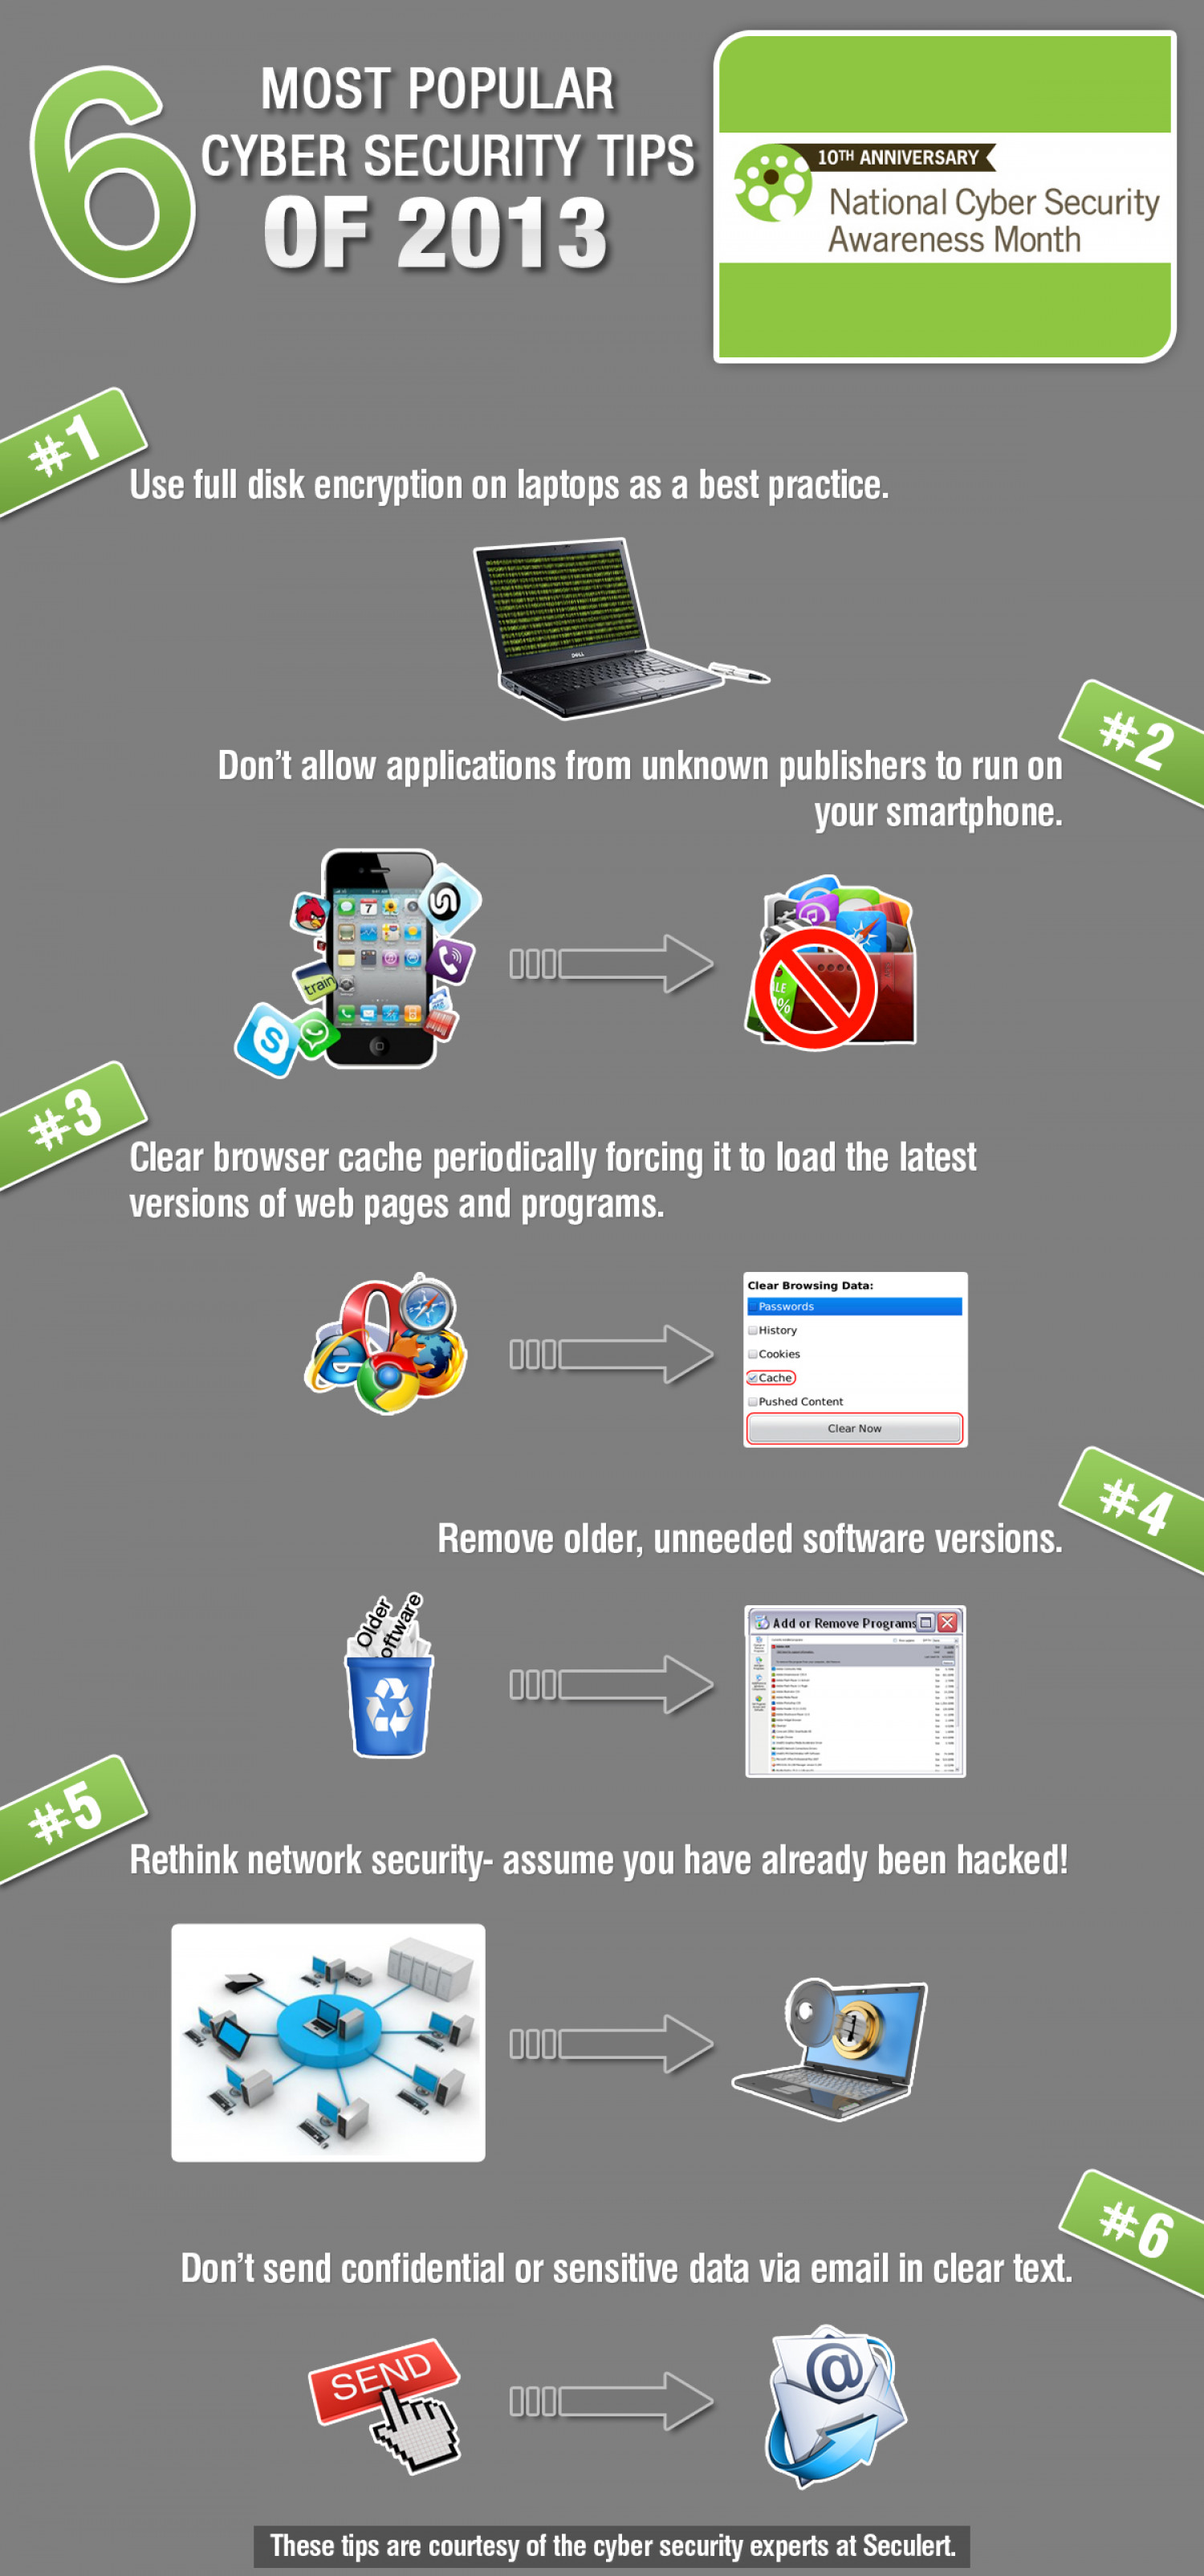 6 Most Popular Cyber Security Tips of 2013 Infographic